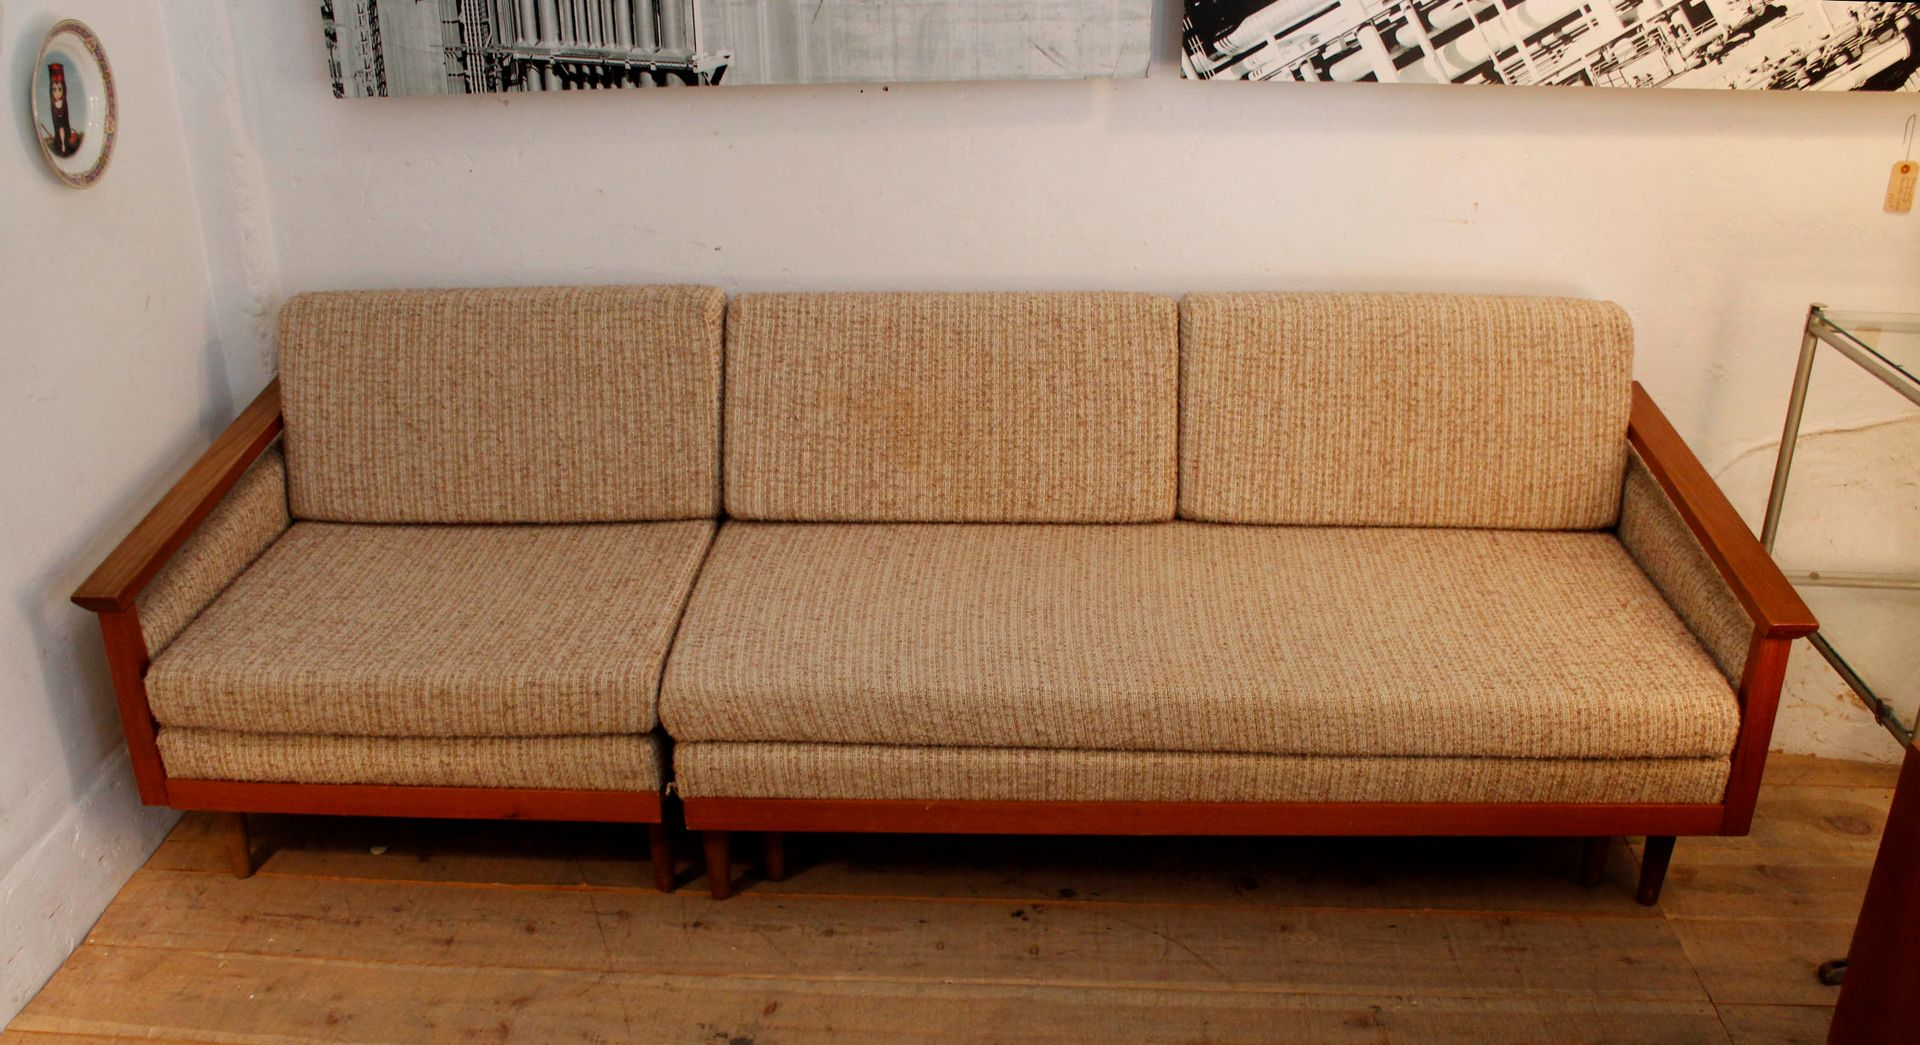 Vintage swedish four seater sofa with chaise longue for for Chaise longue style sofa